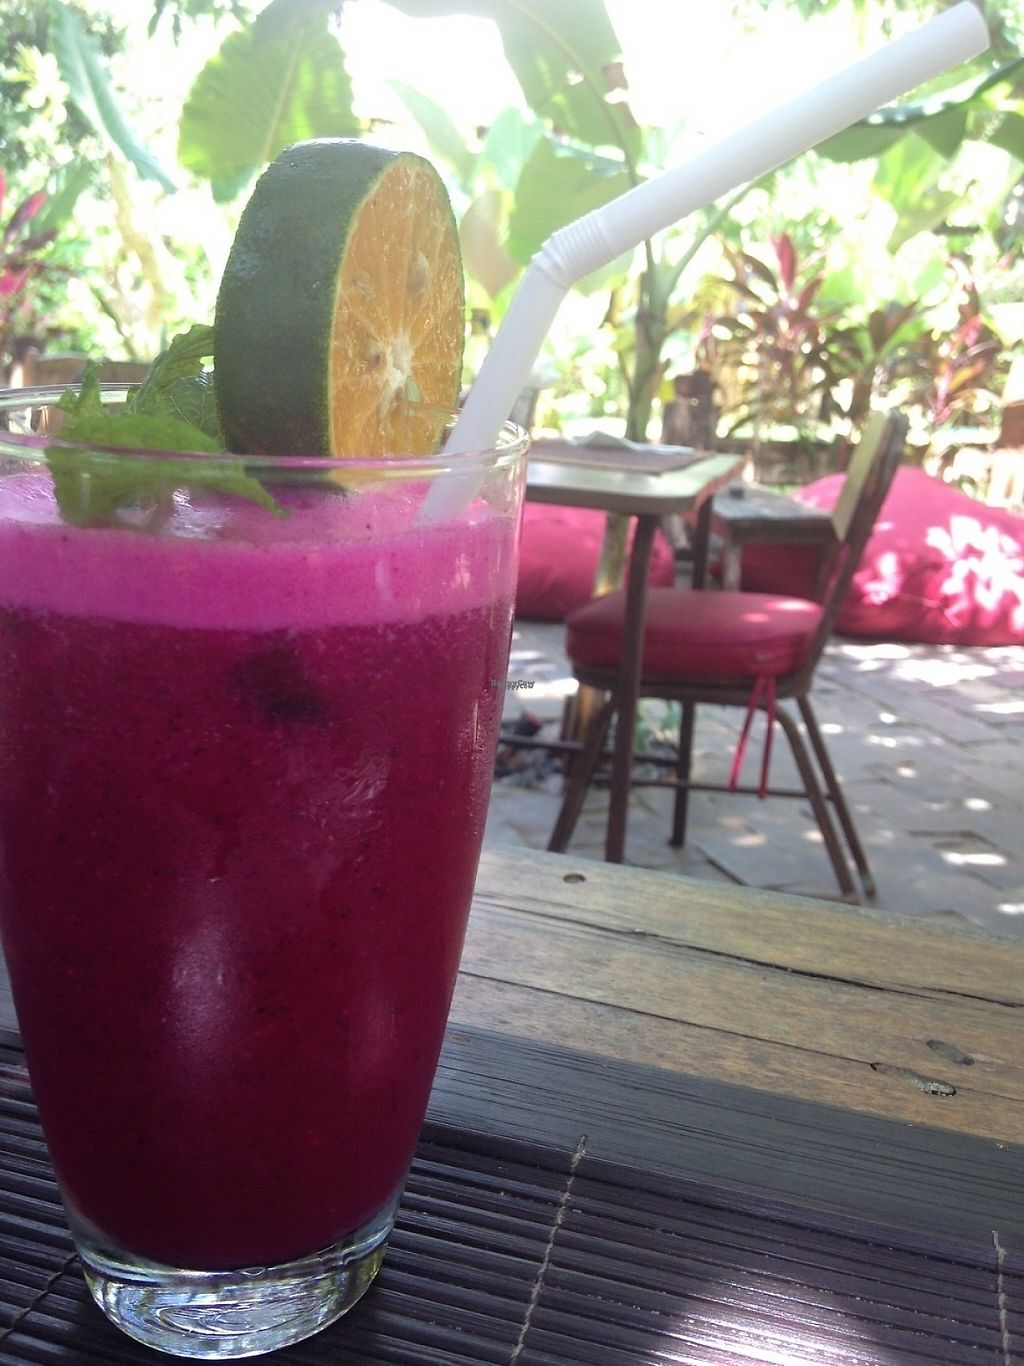 "Photo of The Alchemist Restaurant and Ecolodge  by <a href=""/members/profile/JuliasJourney"">JuliasJourney</a> <br/>Dragonfruit, Orange, Mint Juice <br/> December 30, 2016  - <a href='/contact/abuse/image/84579/206144'>Report</a>"